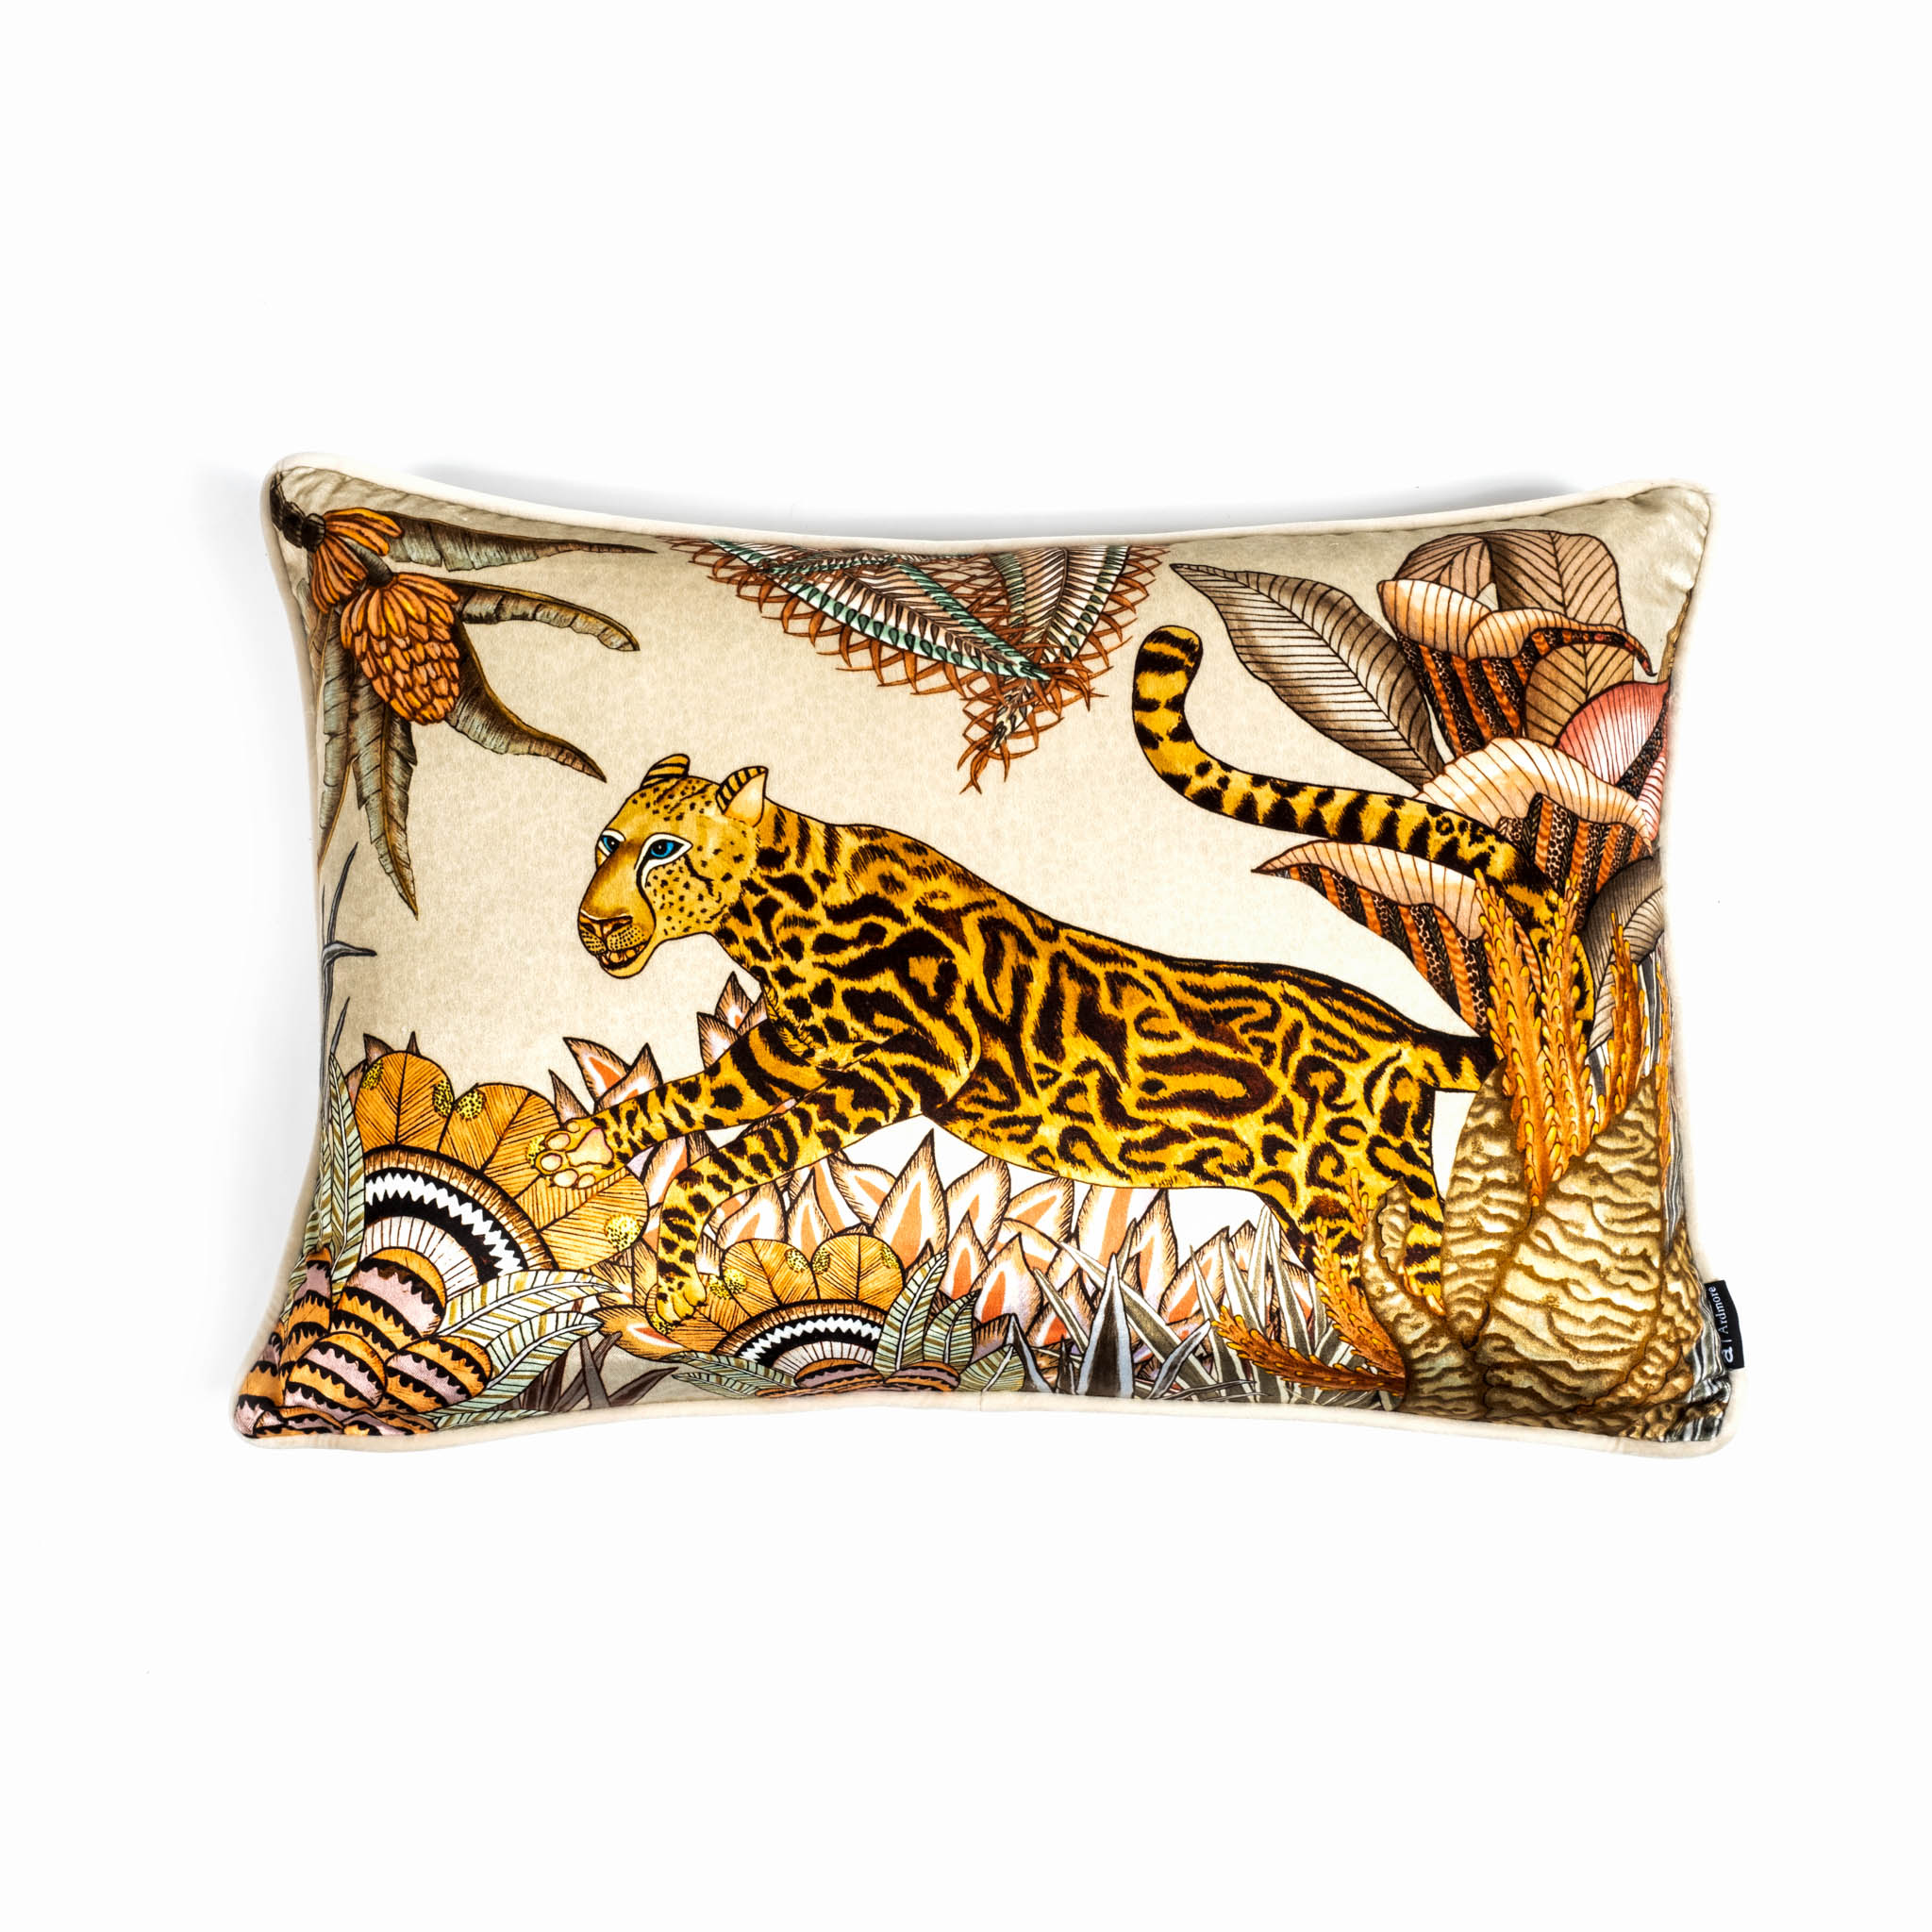 Cheetah Kings Forest Lumbar Pillow - Velvet - Magnolia